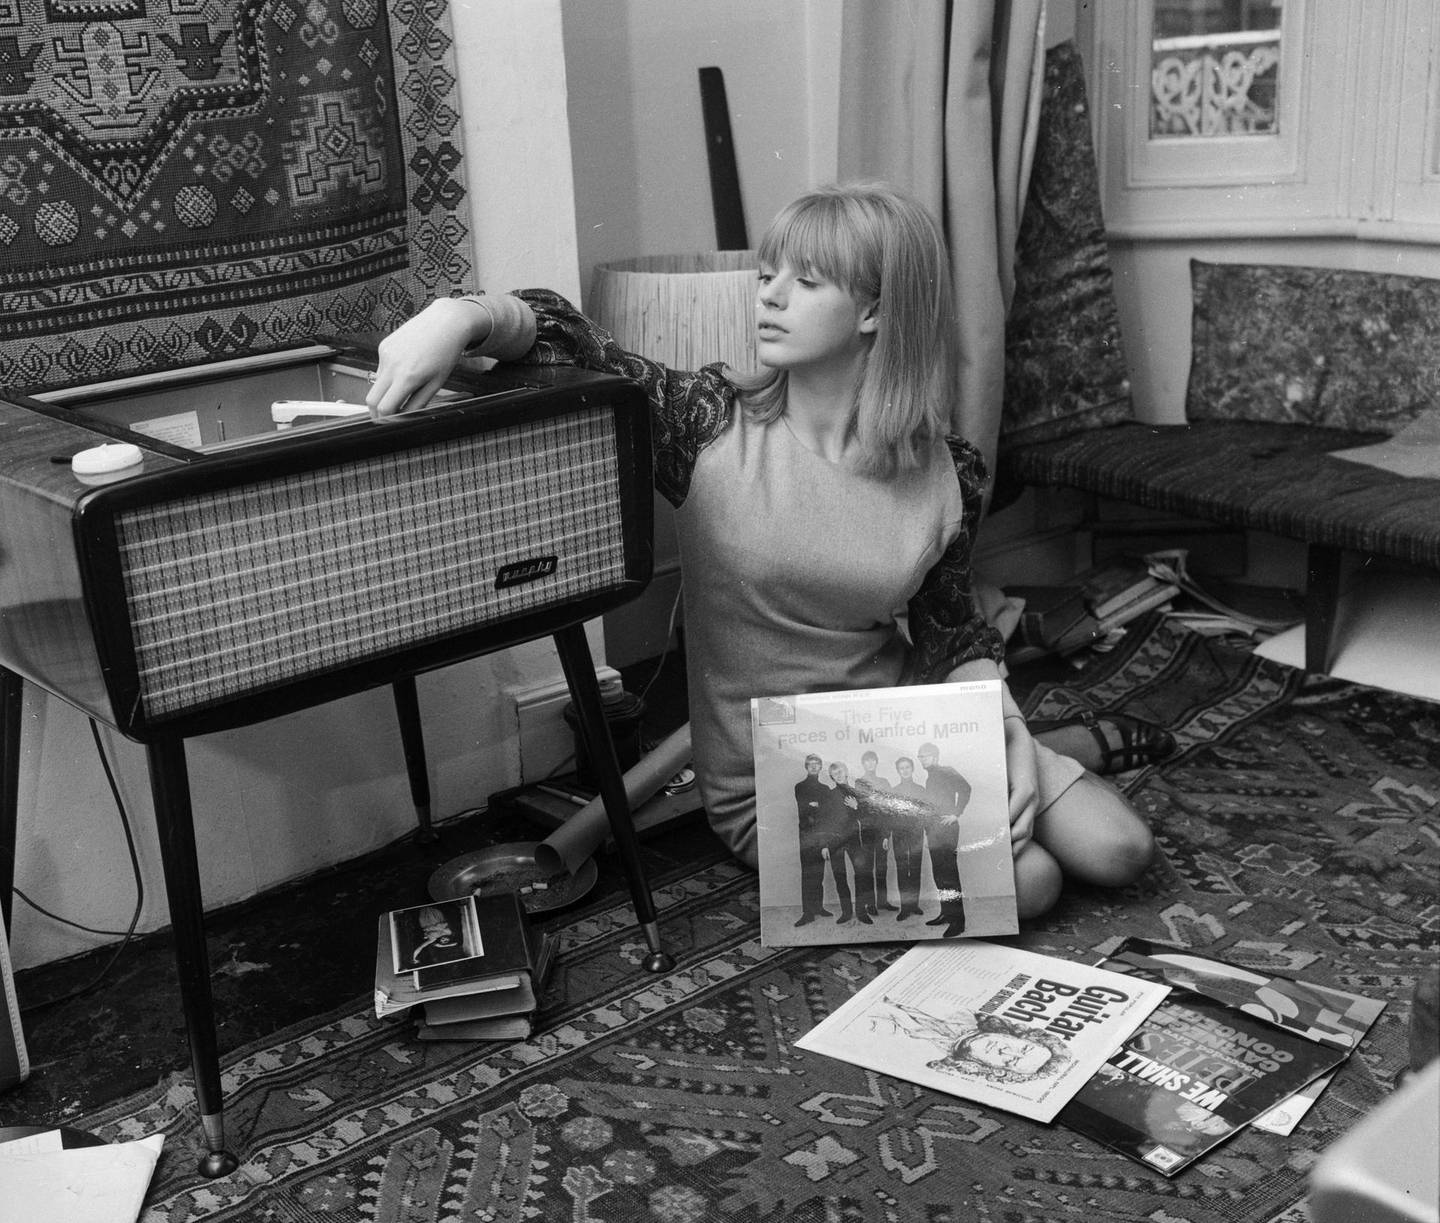 FILE - 4 APRIL 2020: Singer Marianne Faithfull, 74, has been hospitalised with COVID-19 in London 15th October 1964:  Marianne Faithfull playing records at her home in Reading. Among the records scattered on the floor are albums by Pete Seeger and Manfred Mann.  (Photo by John Pratt/Keystone Features/Getty Images)